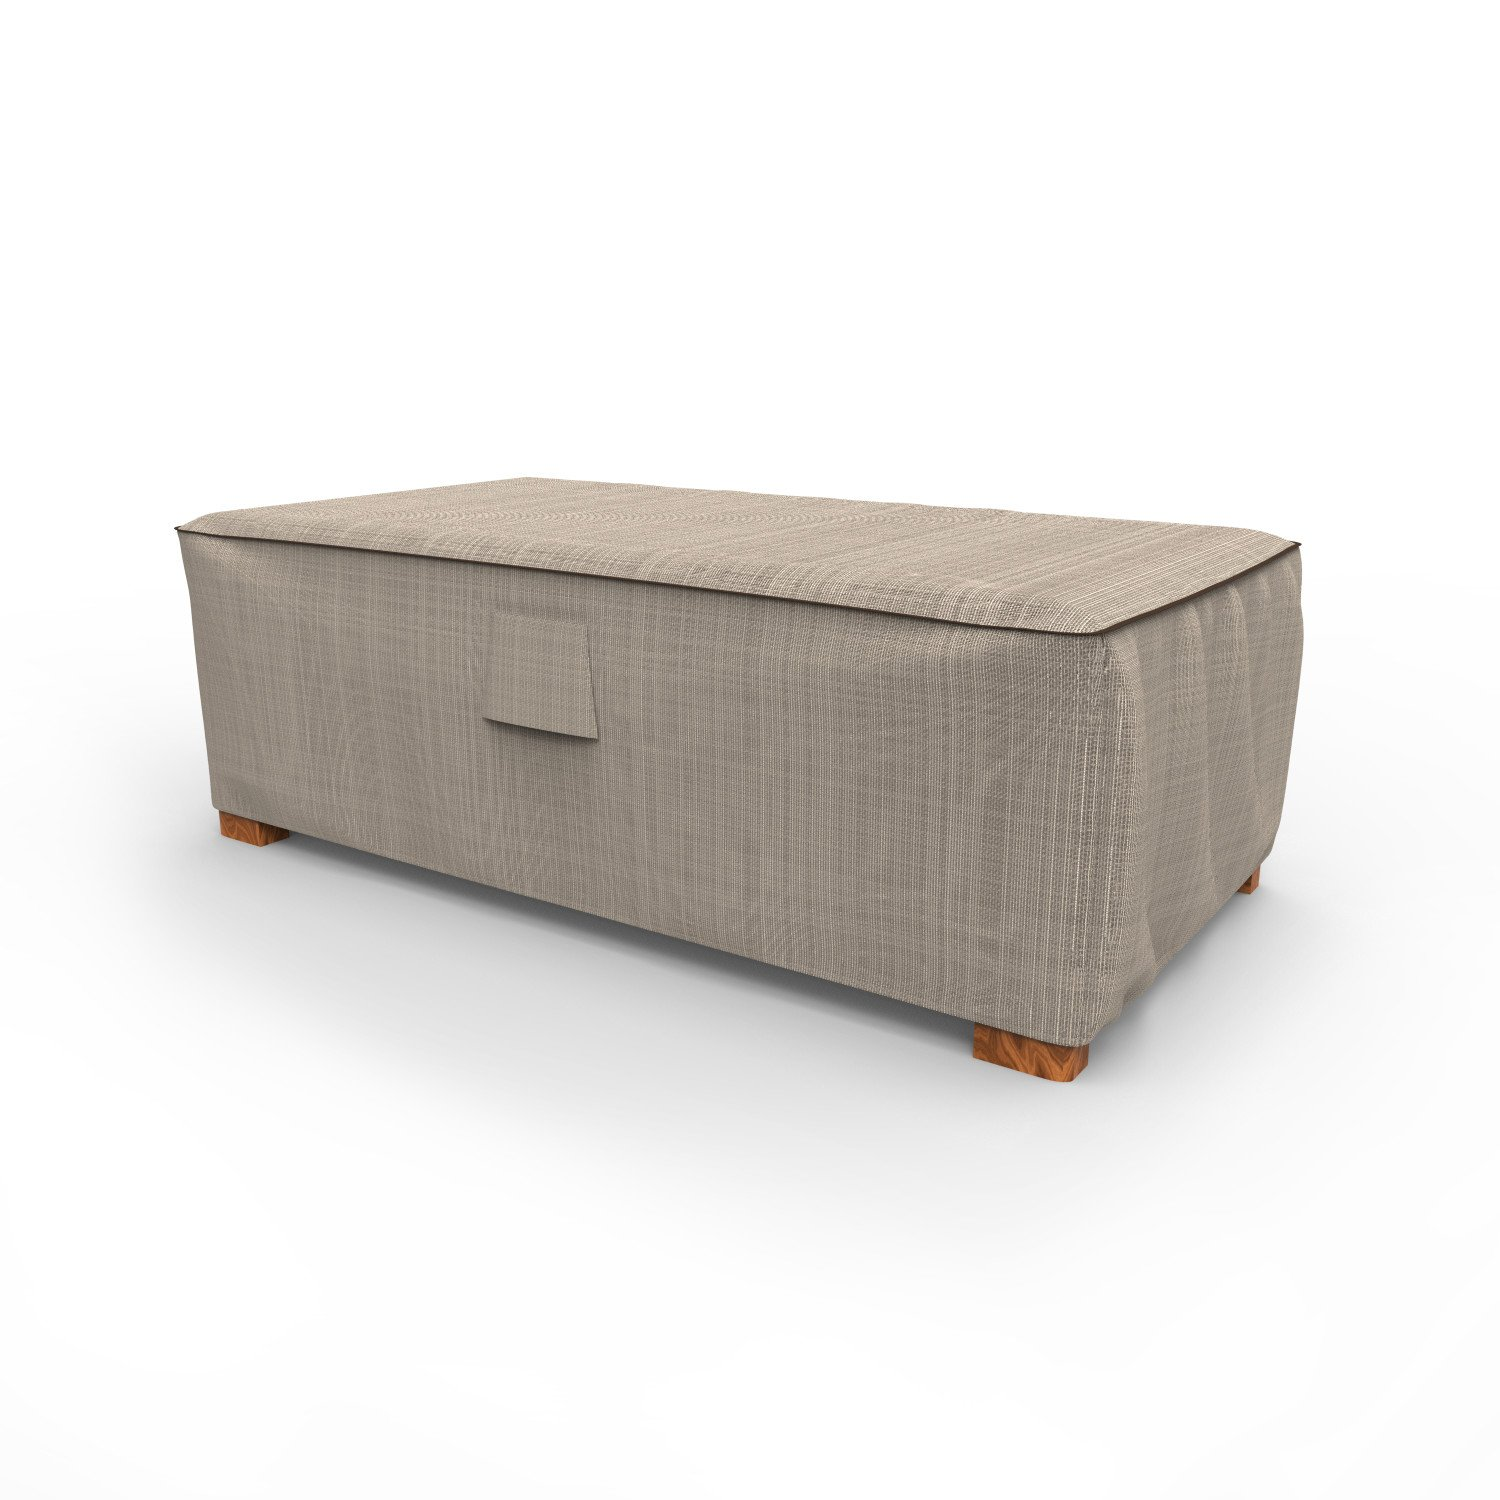 Budge P5A35PM1 English Garden Patio Ottoman Coffee Table Cover, Medium, Two-Tone Tan by Budge